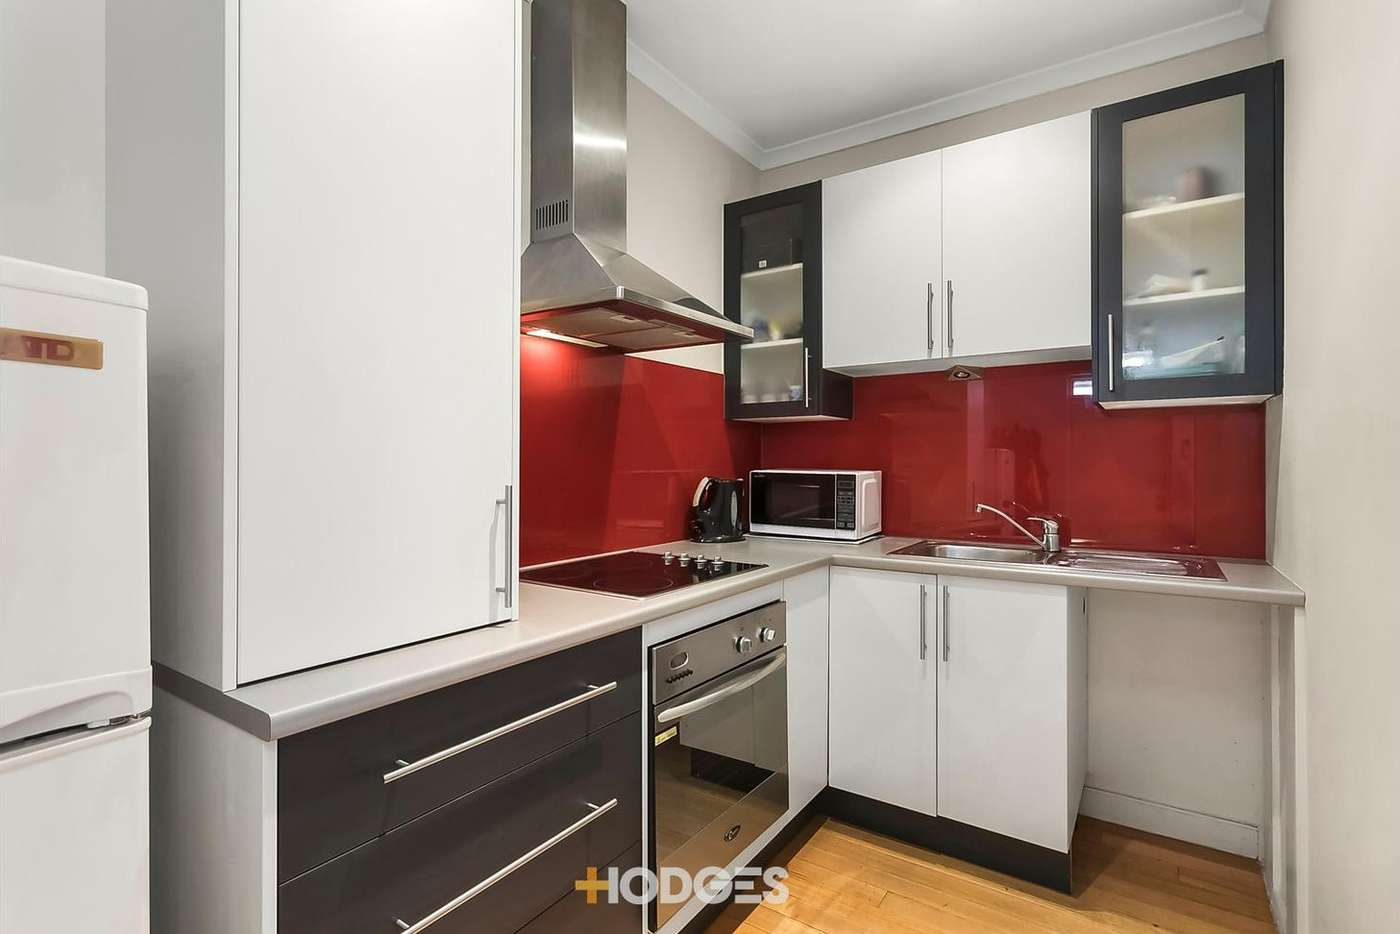 Main view of Homely apartment listing, 7/61 Halstead Street, Caulfield North VIC 3161